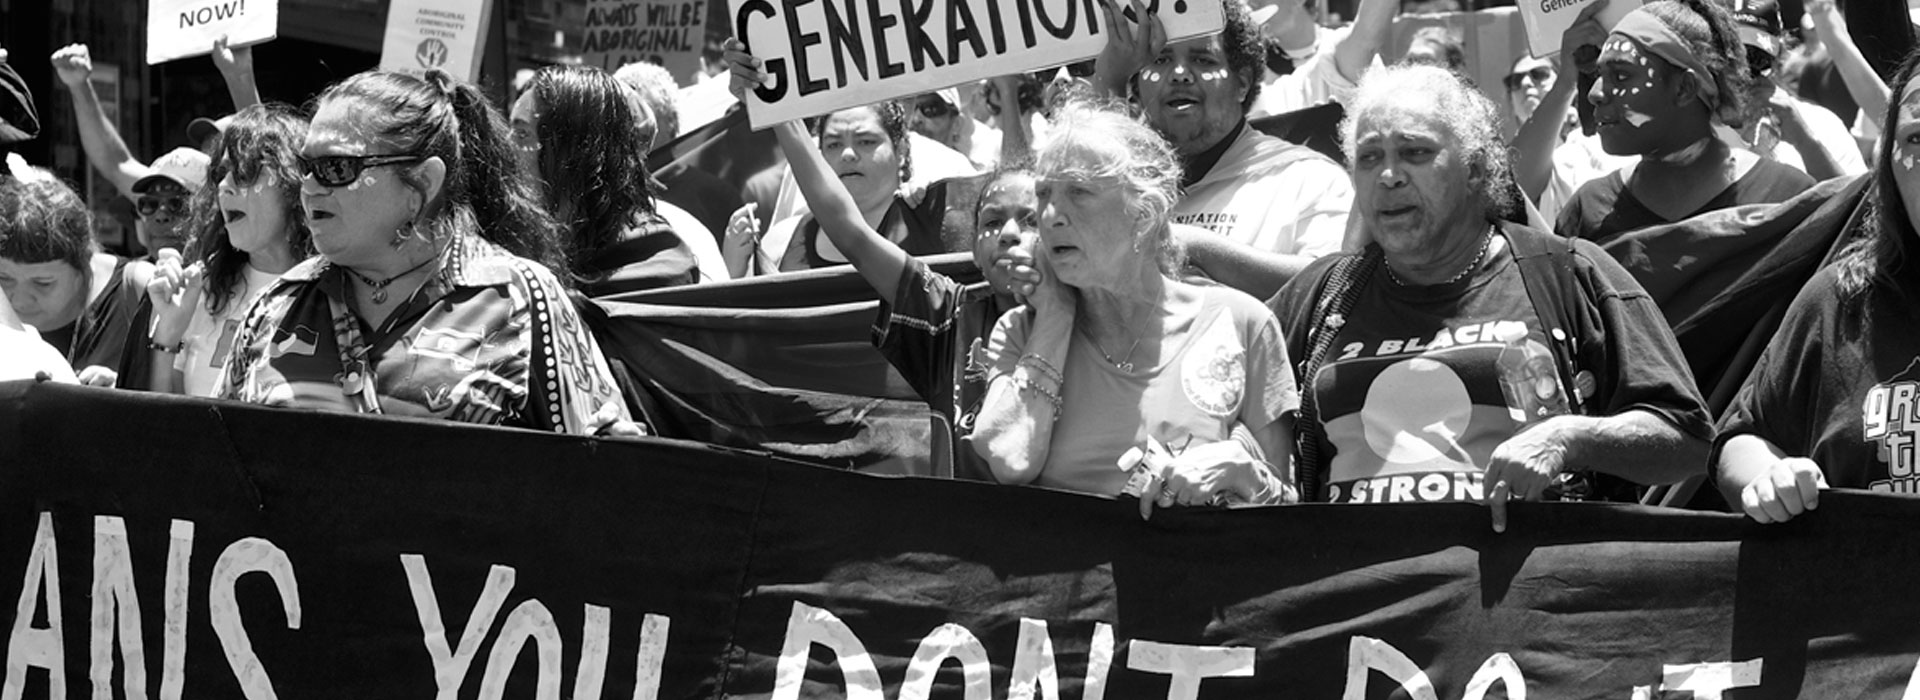 """Crowd protesting. A sign held up reads """"How many stolen generations?"""""""